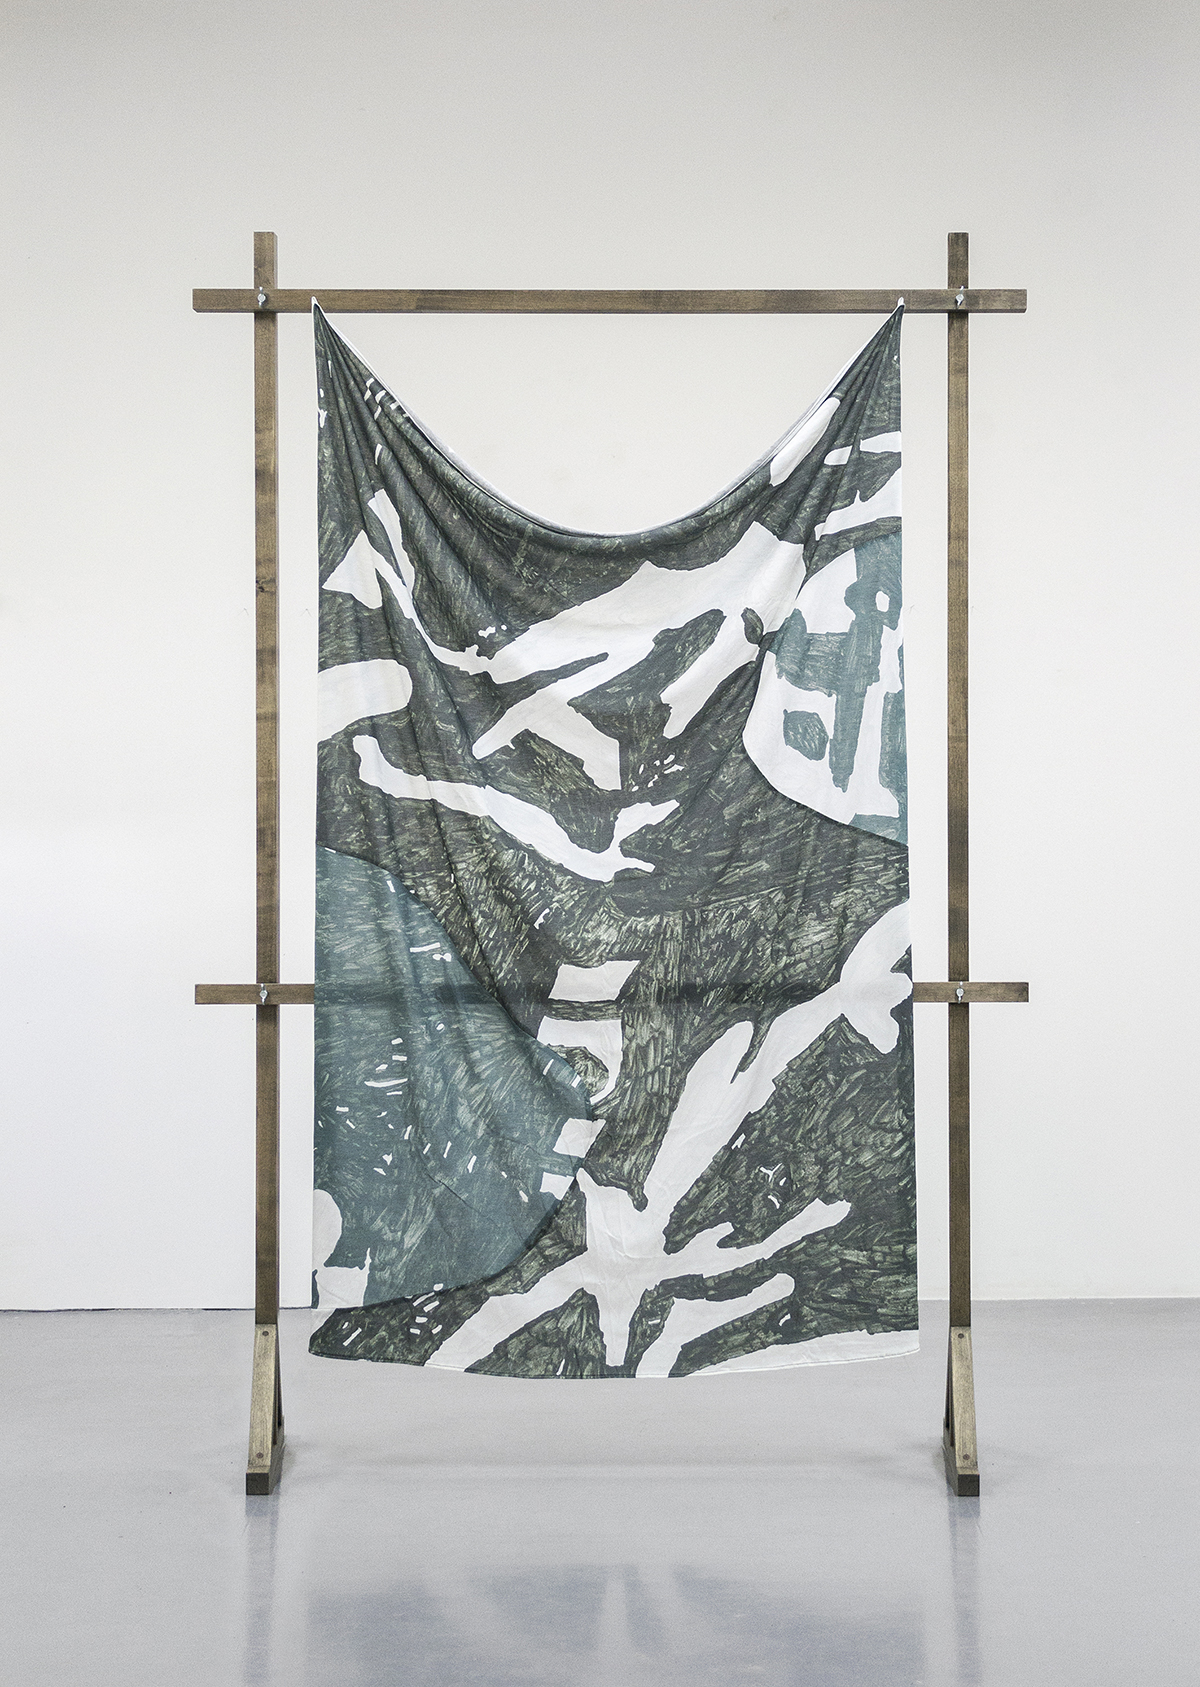 Shirt (Bootleg) (2016), 160 x 210 cm, print/collage on cotton, wooden structure